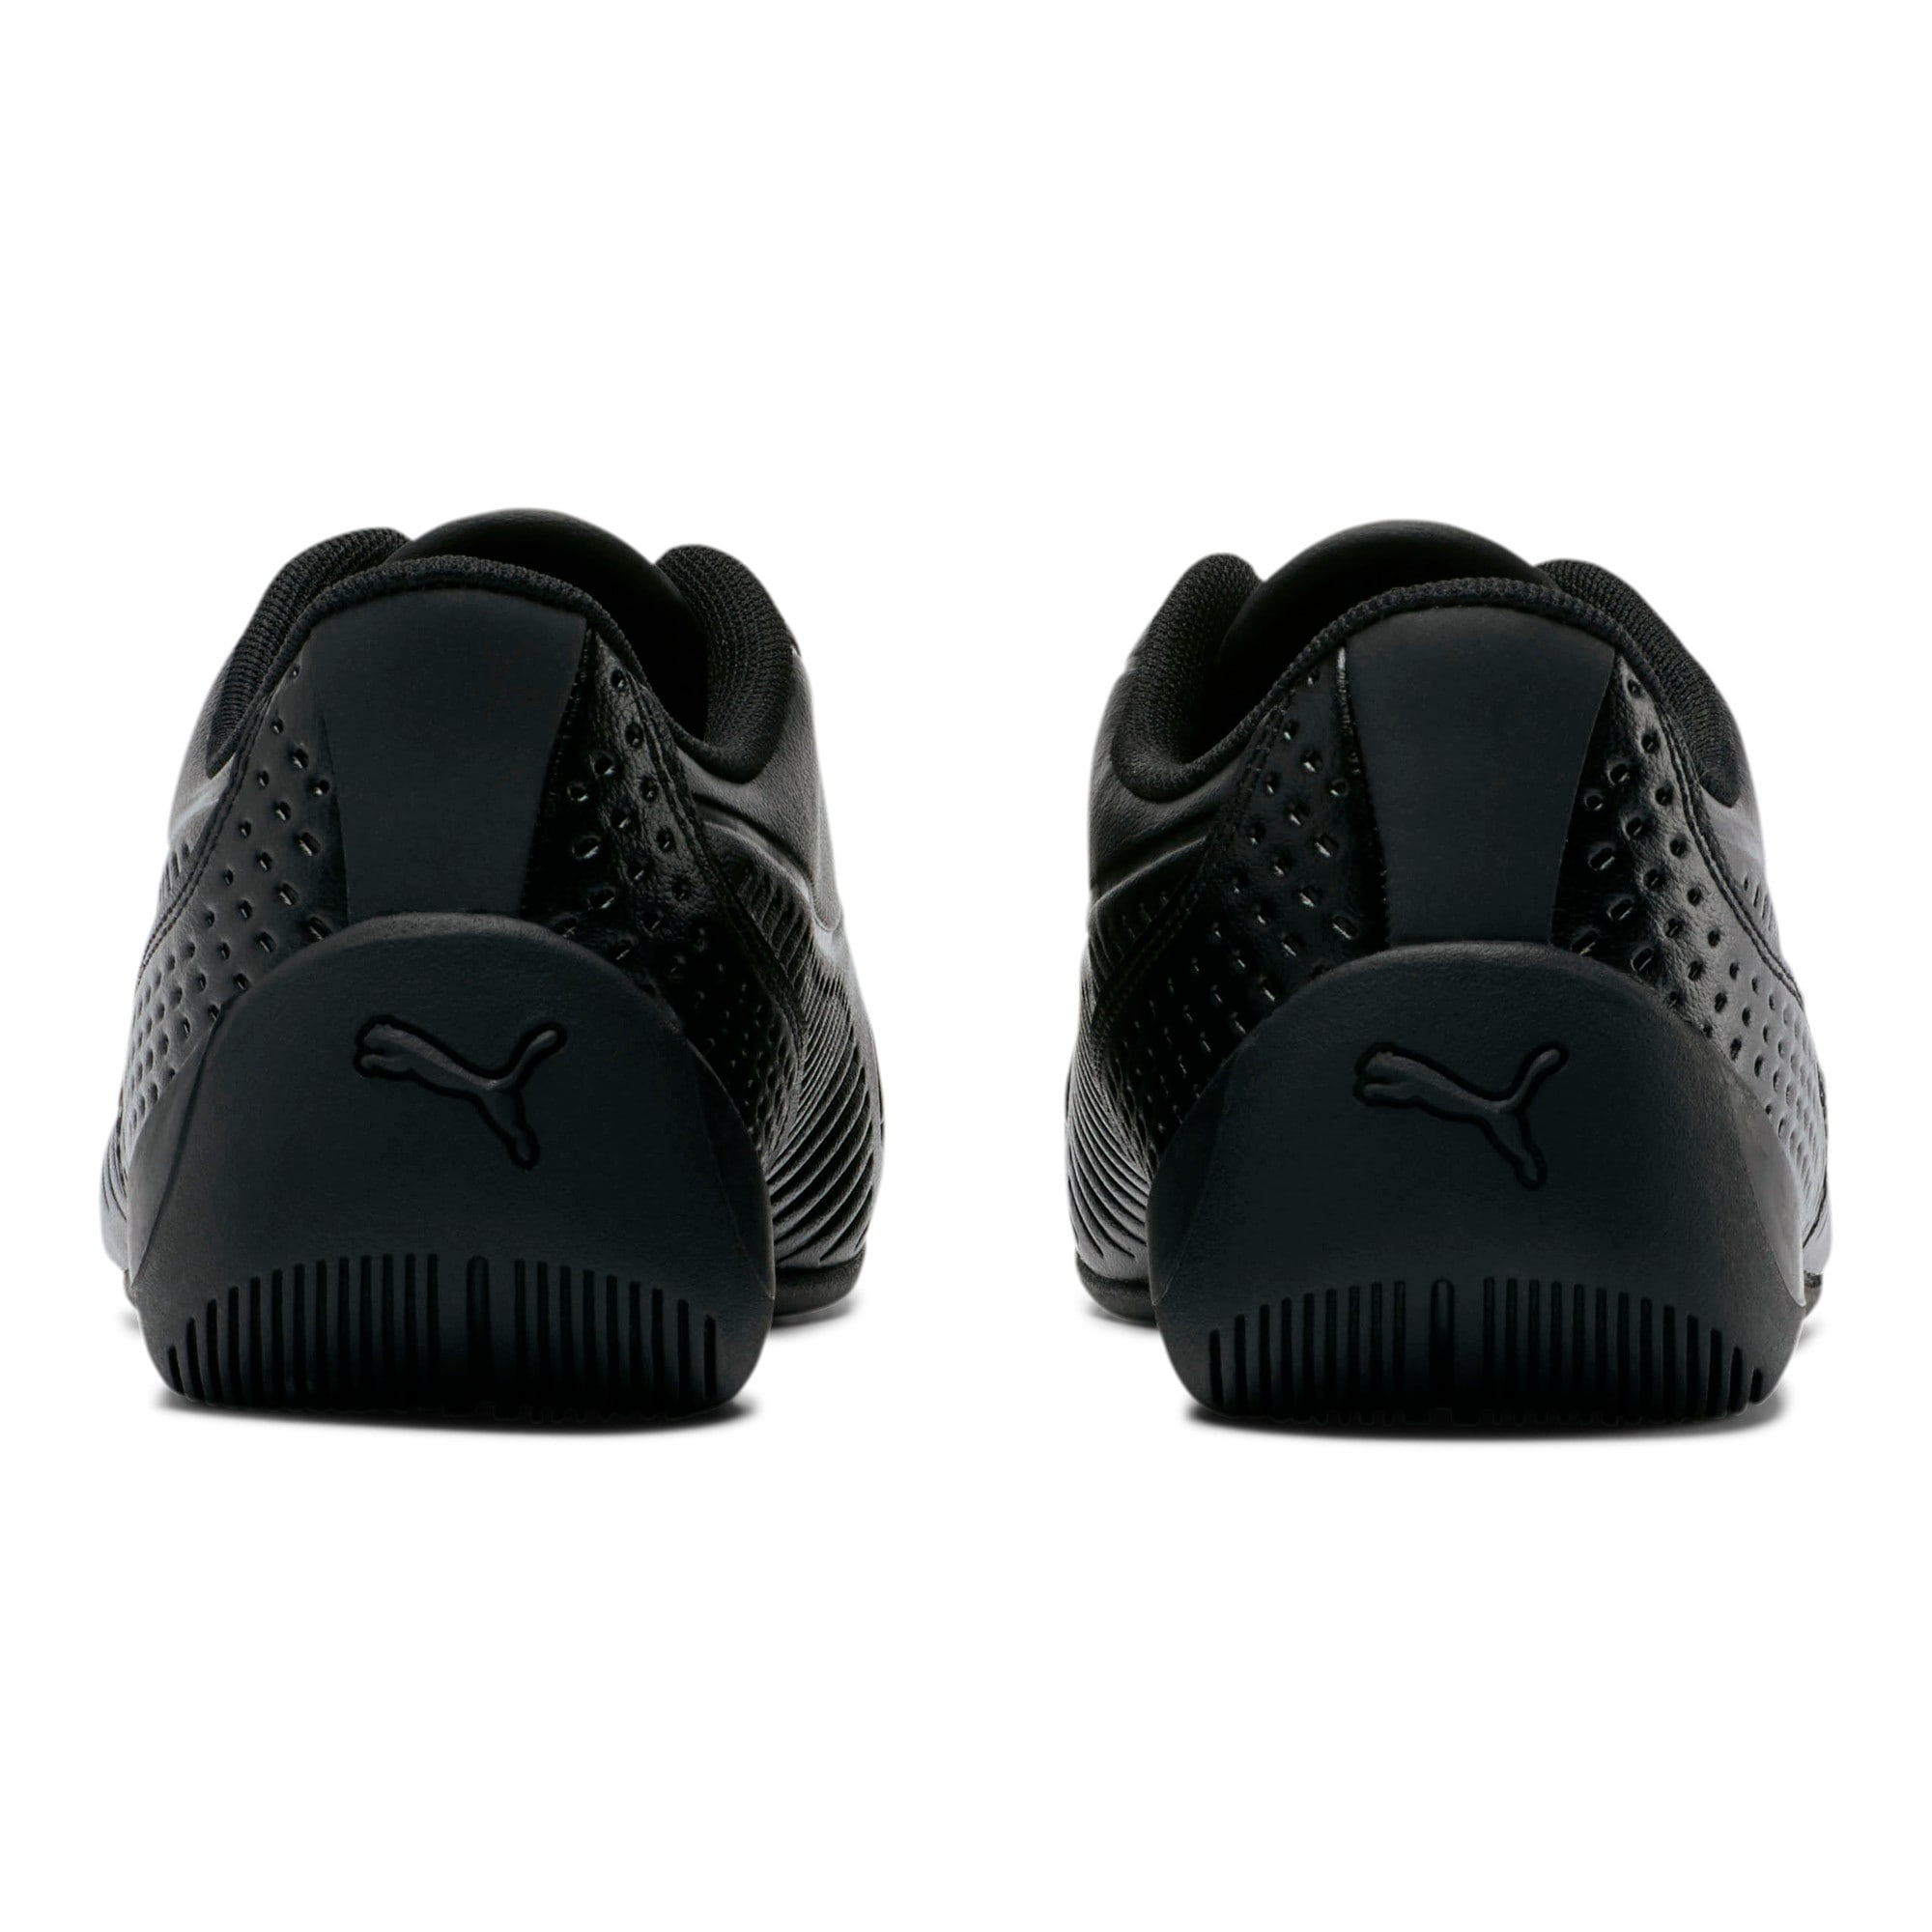 Thumbnail 3 of Drift Cat 7S Ultra Shoes JR, Puma Black-Puma Black, medium